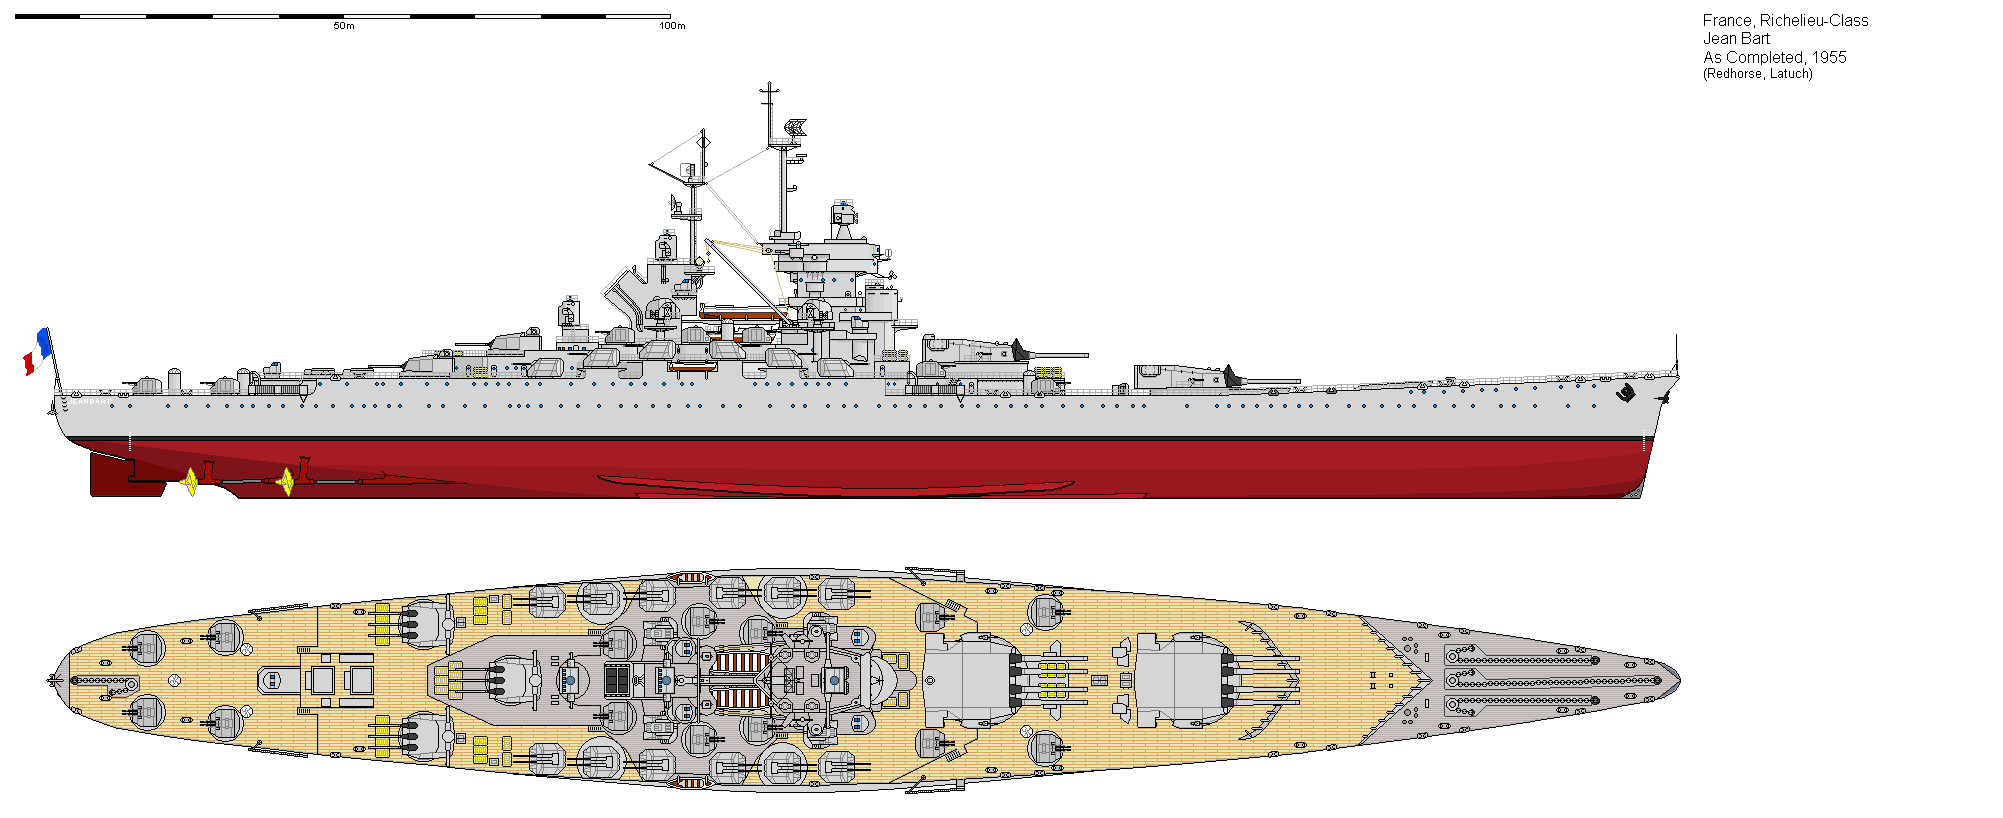 Jean Bart in her final form 1955 via Shipbucket http://www.shipbucket.com/images.php?dir=Real%20Designs/France/BB%20Jean%20Bart%201955.png click to very much big up